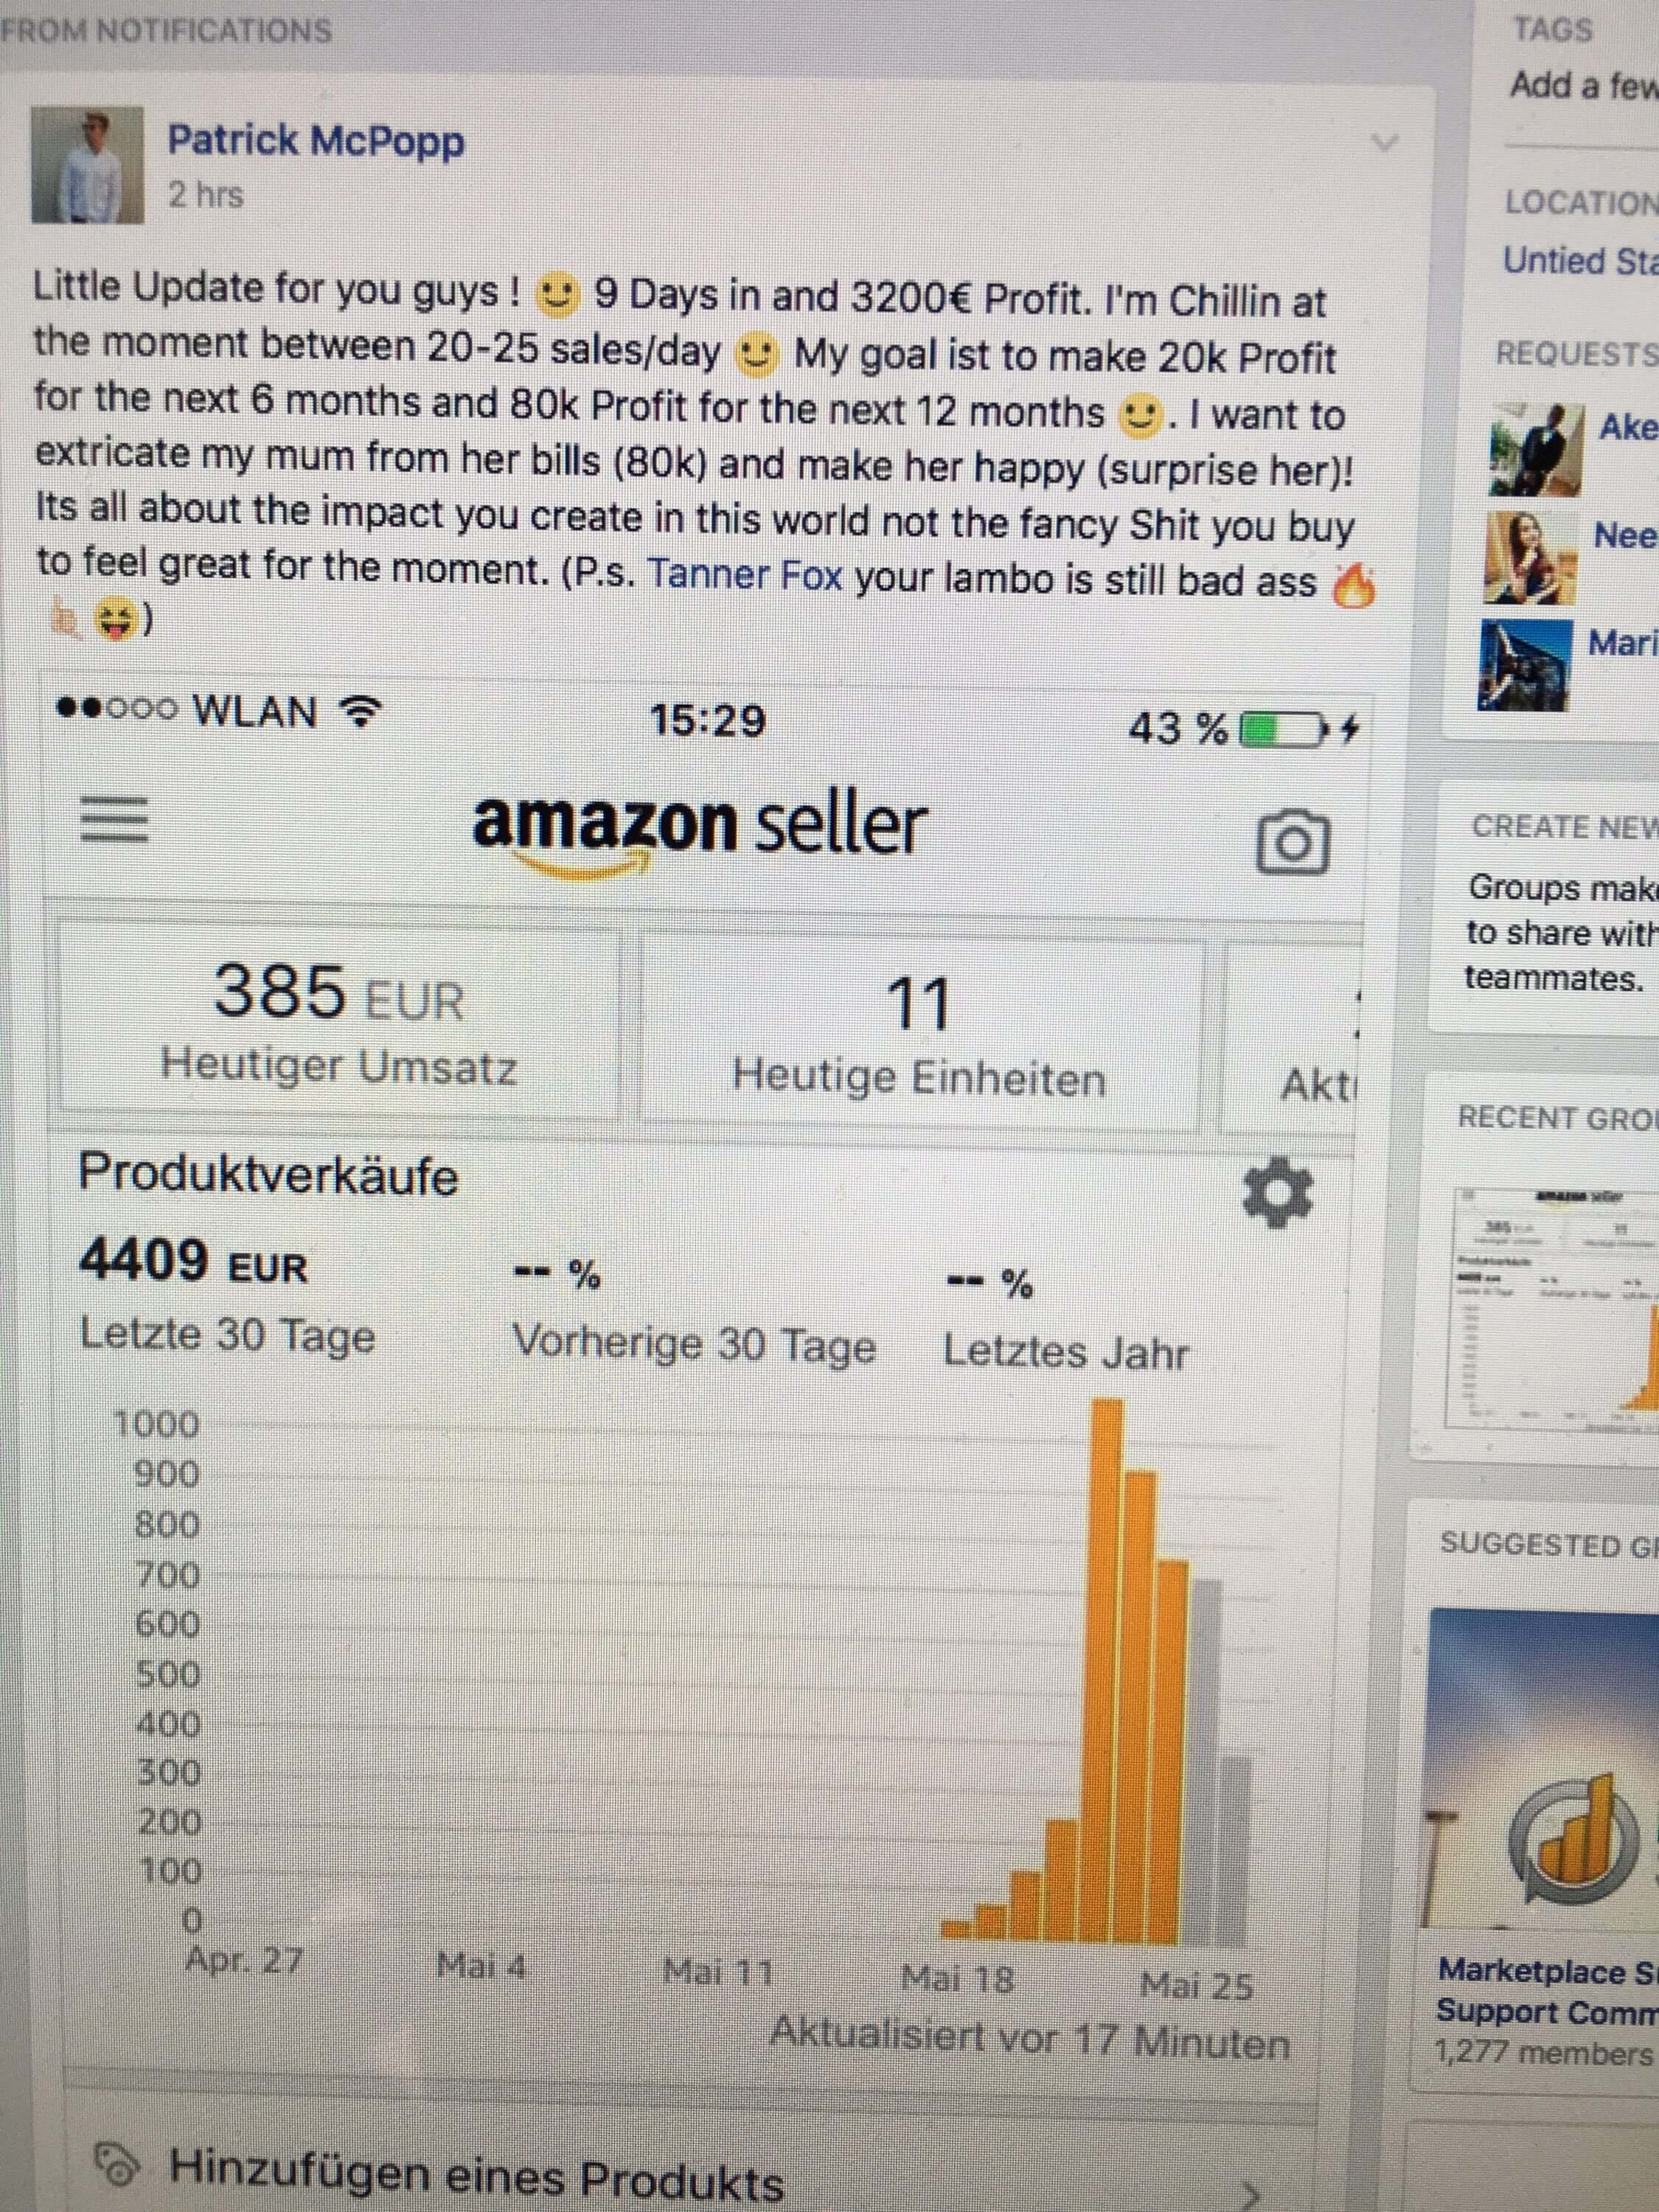 tanner-j-fox-amazon-fba-sales-results-9